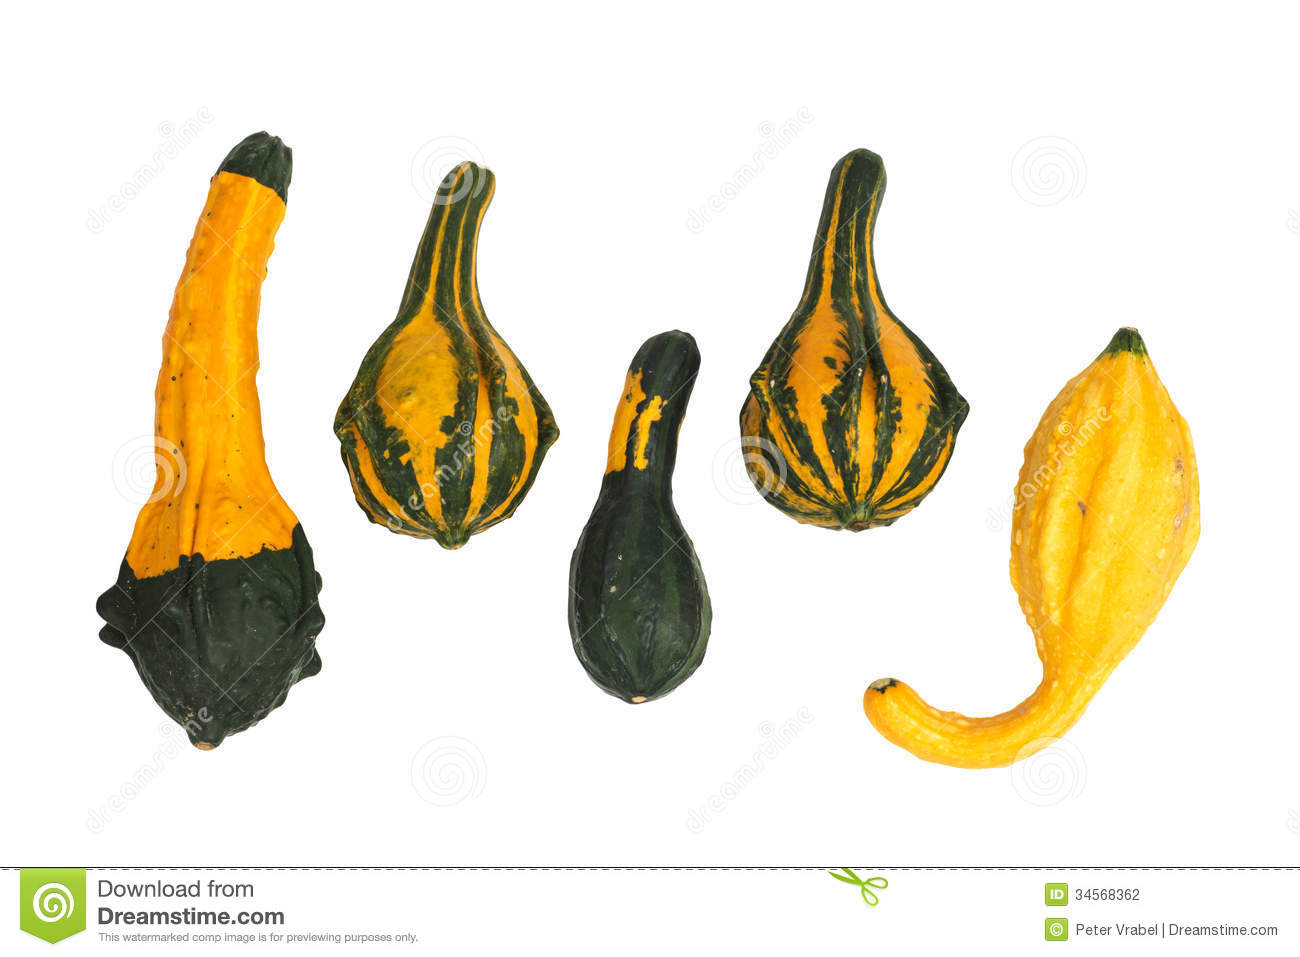 Ornamental Gourds Stock Photos, Images, & Pictures.